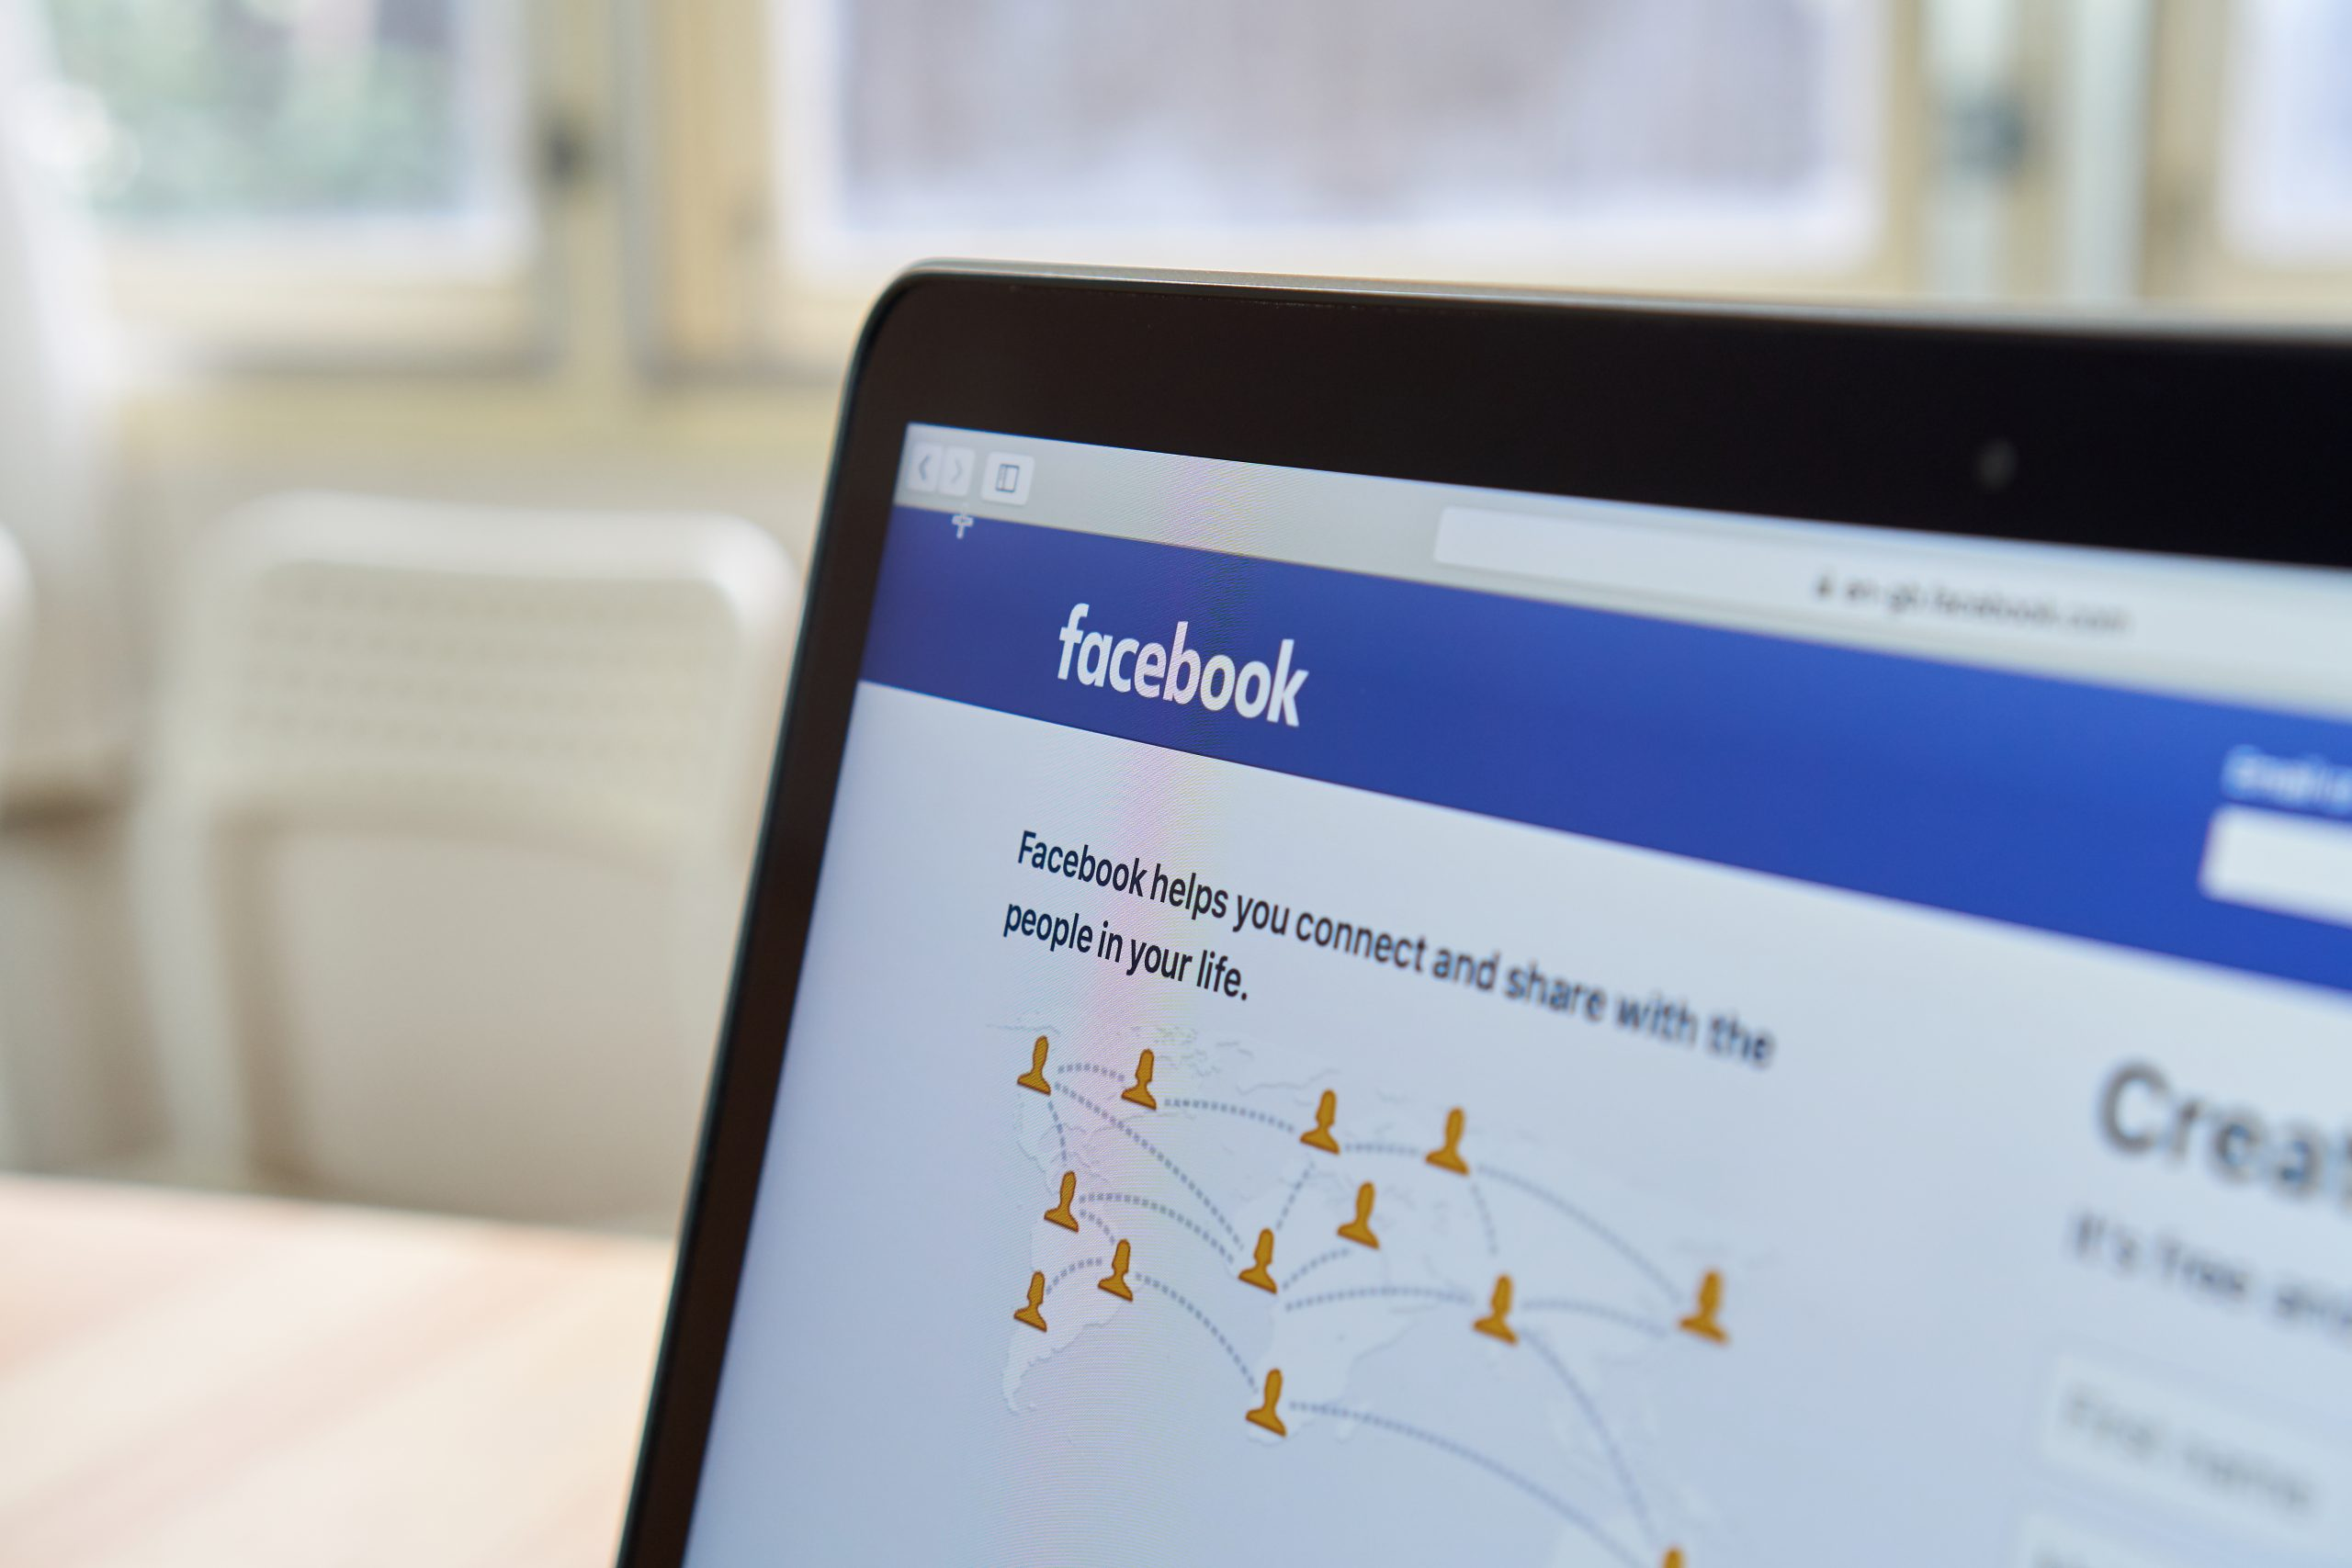 Ways to build a community through Facebook groups